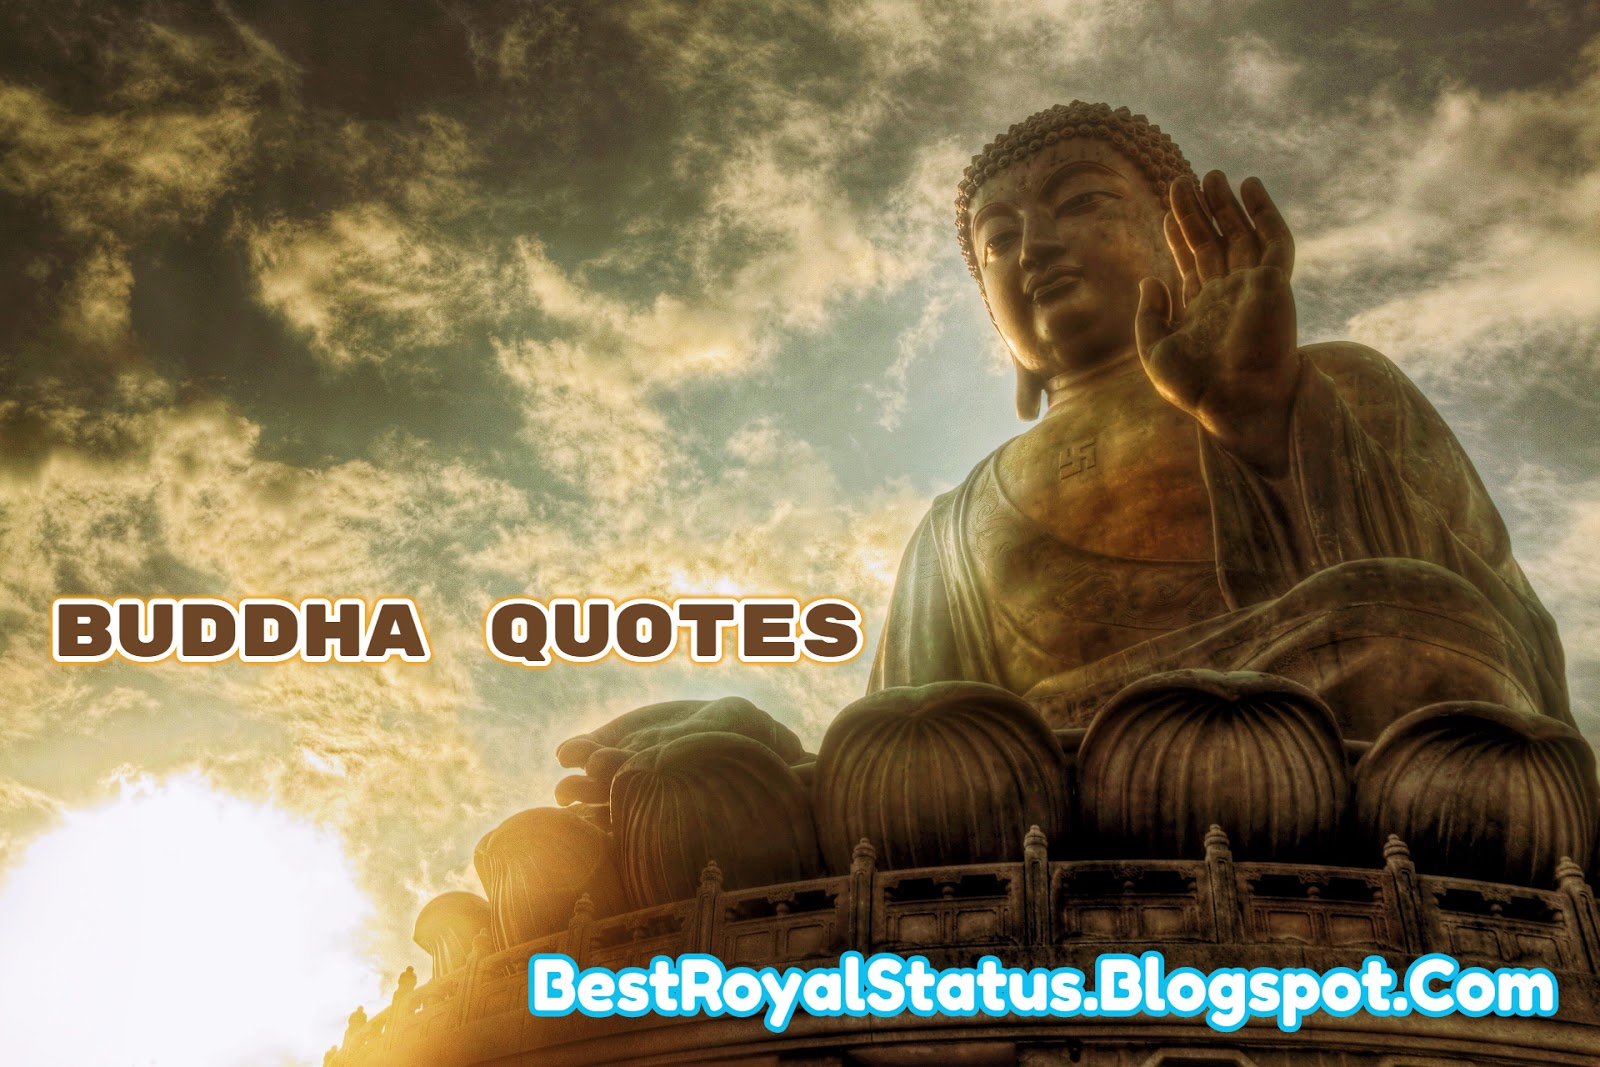 Buddha Quote On Life Best Buddha Quotes On Life  Bestroyalstatus.blogspot